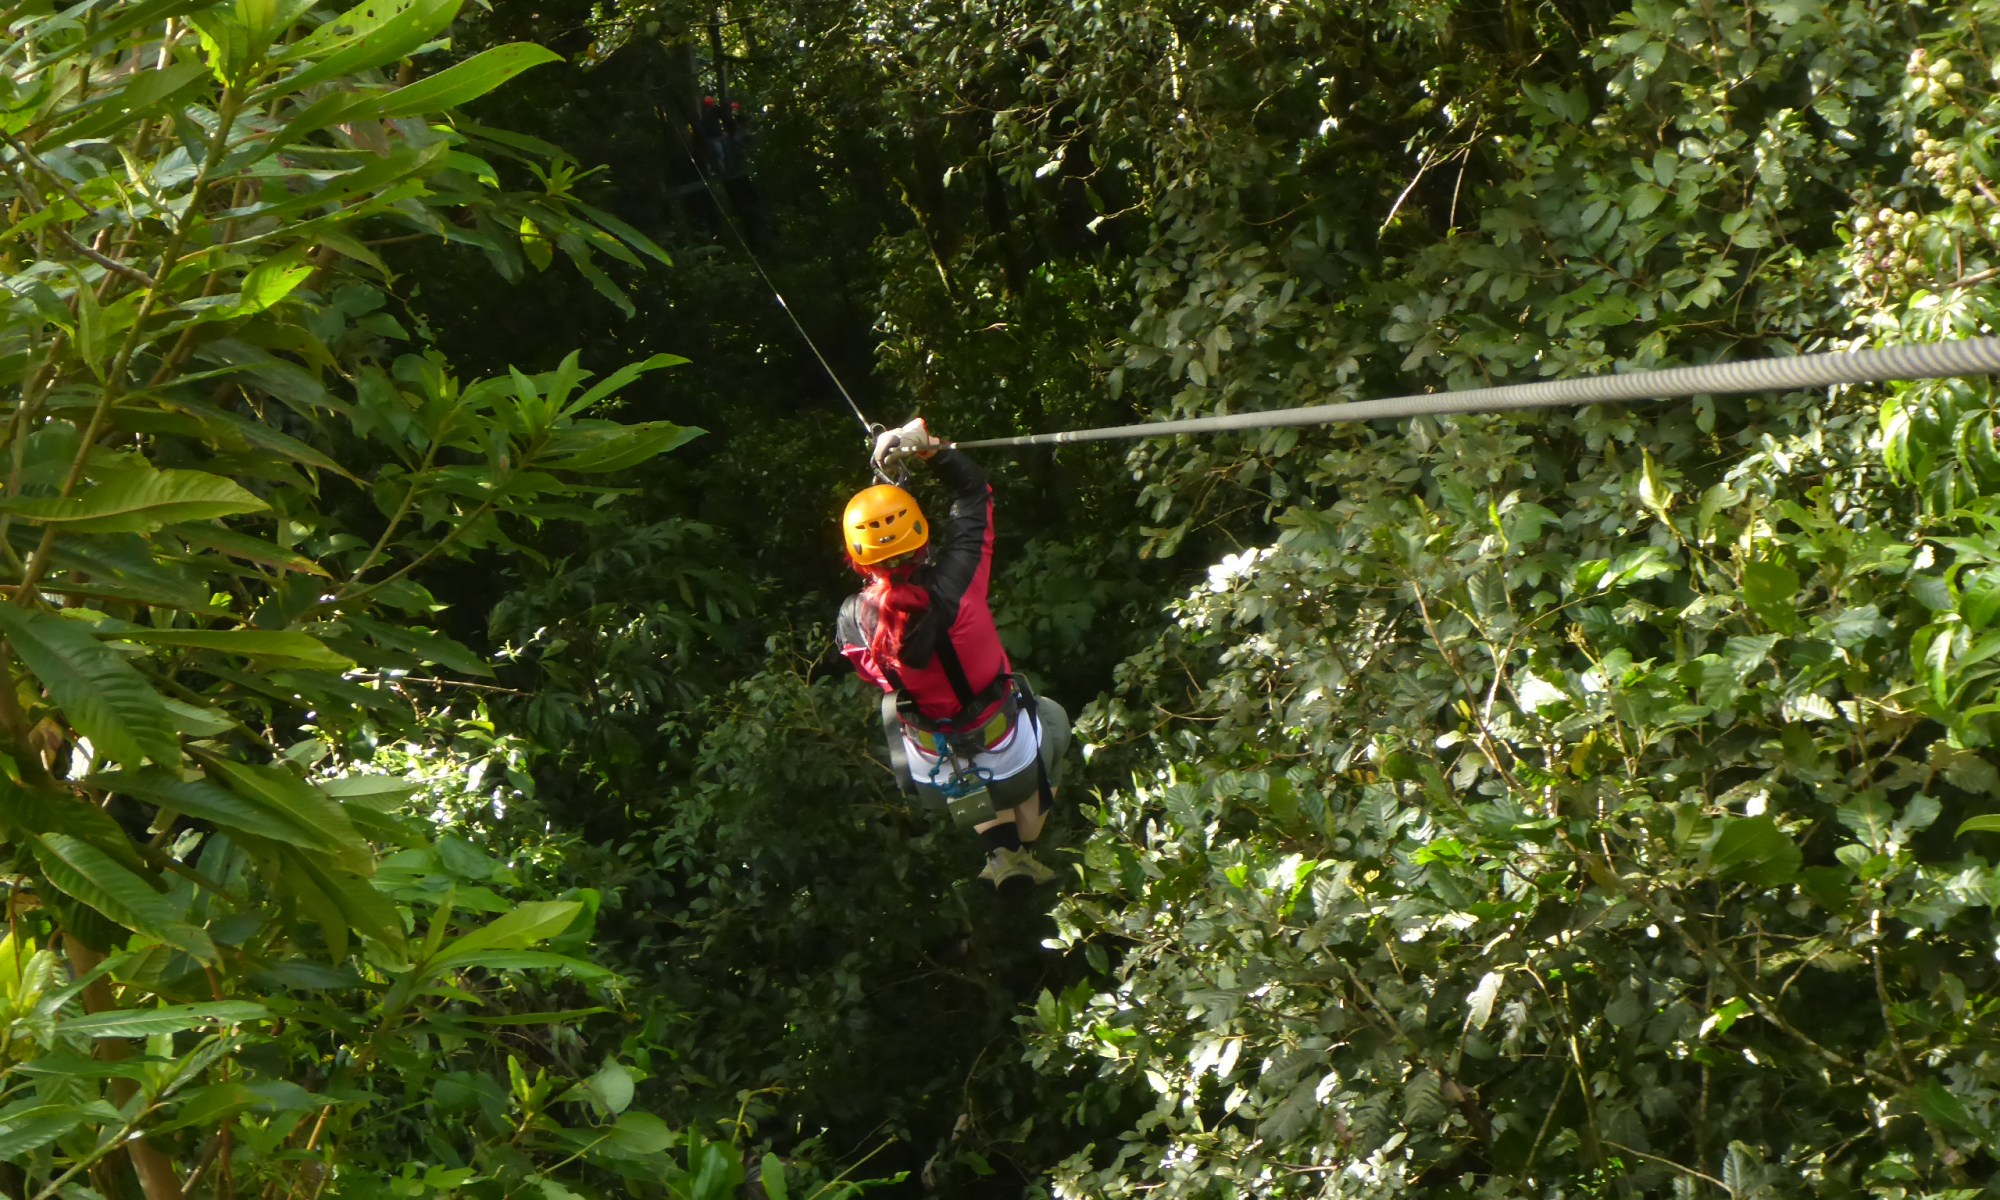 K in Motion Travel Blog. Mountain Adventures in Costa Rica. 100% Aventura Ziplining